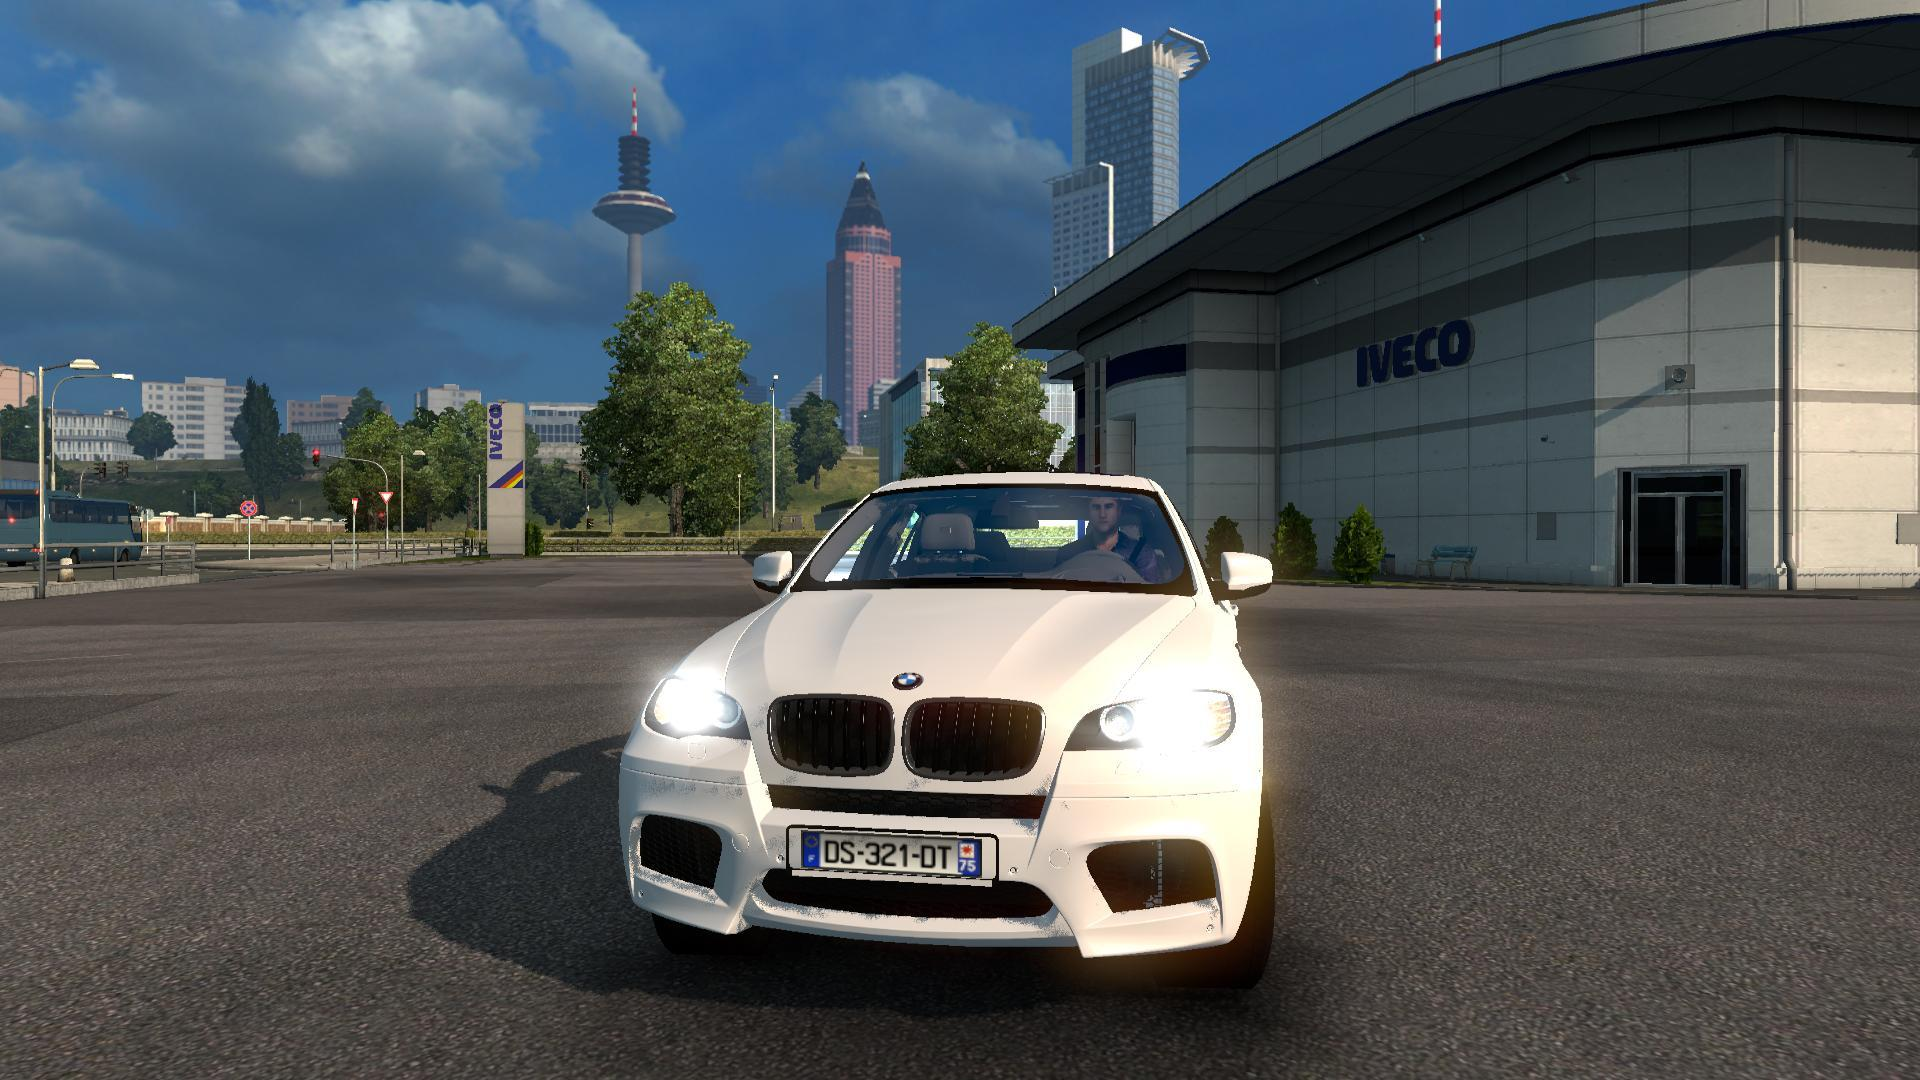 bmw-x6-v3-2-furkansevke-1-19-x-fixed_7.jpg